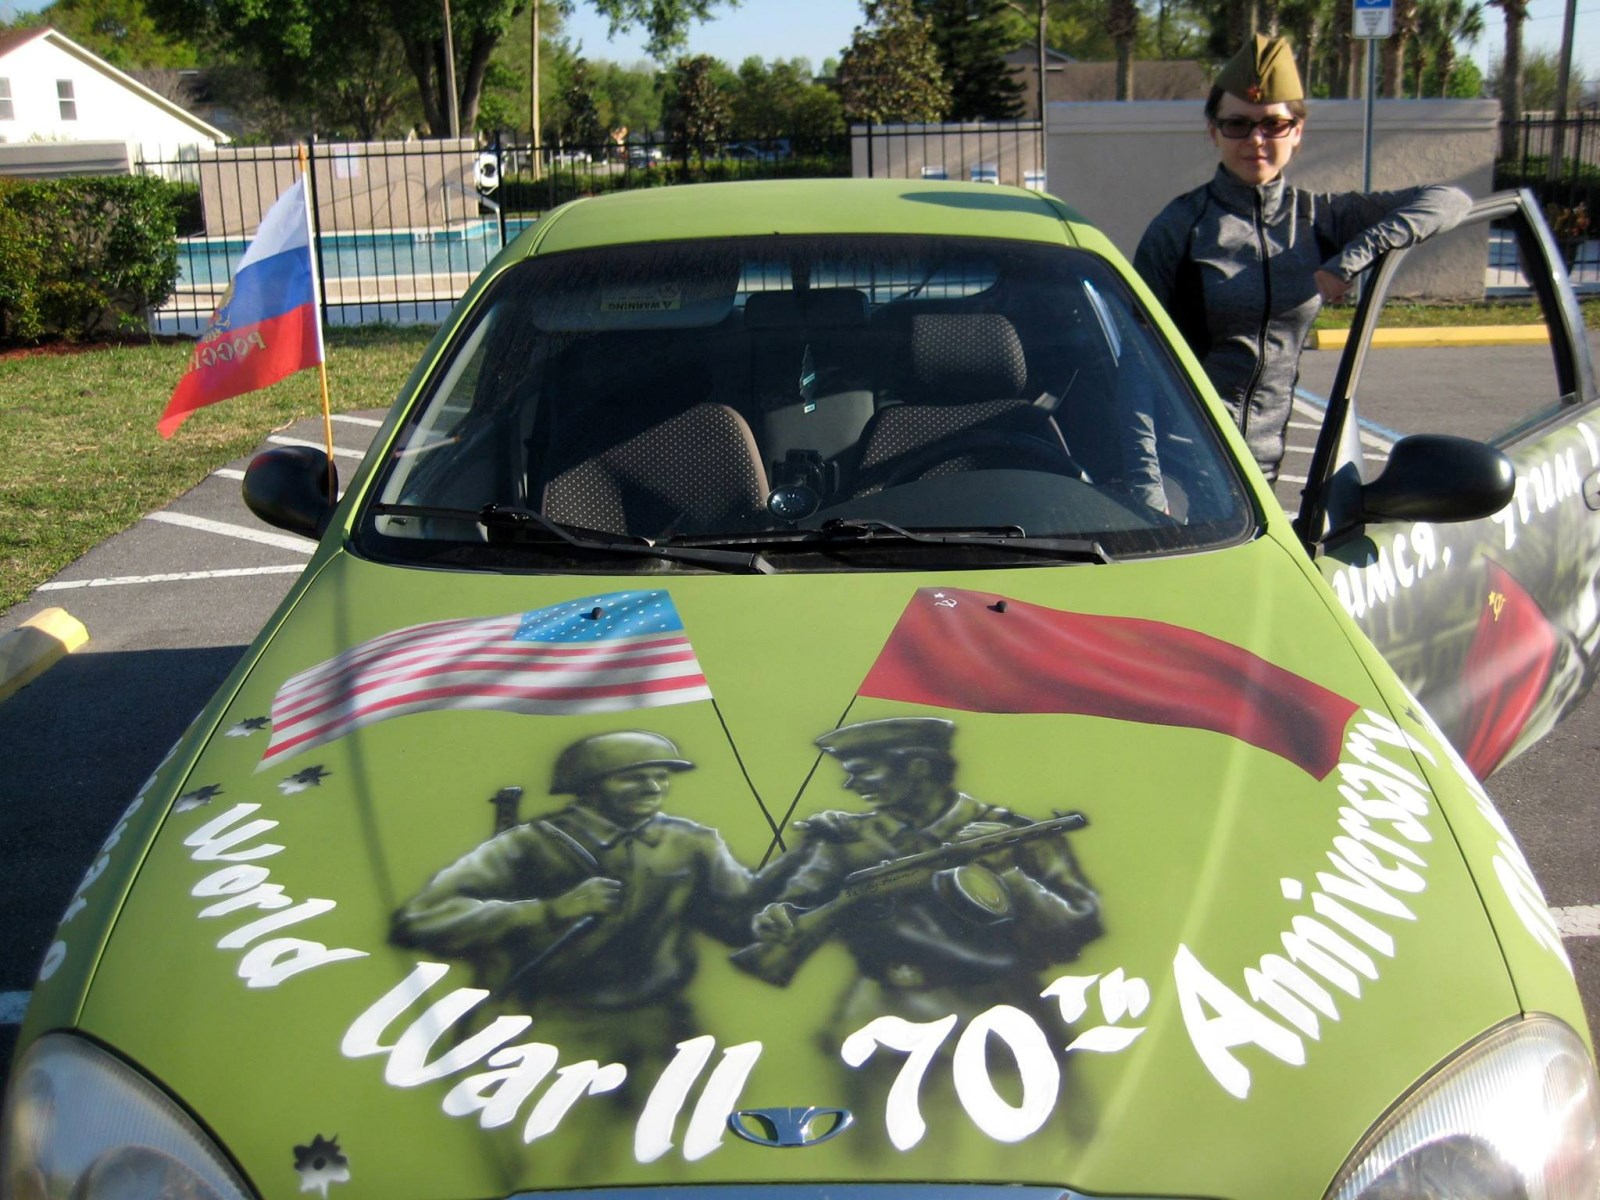 00 us and ussr peace car. 21.04.15